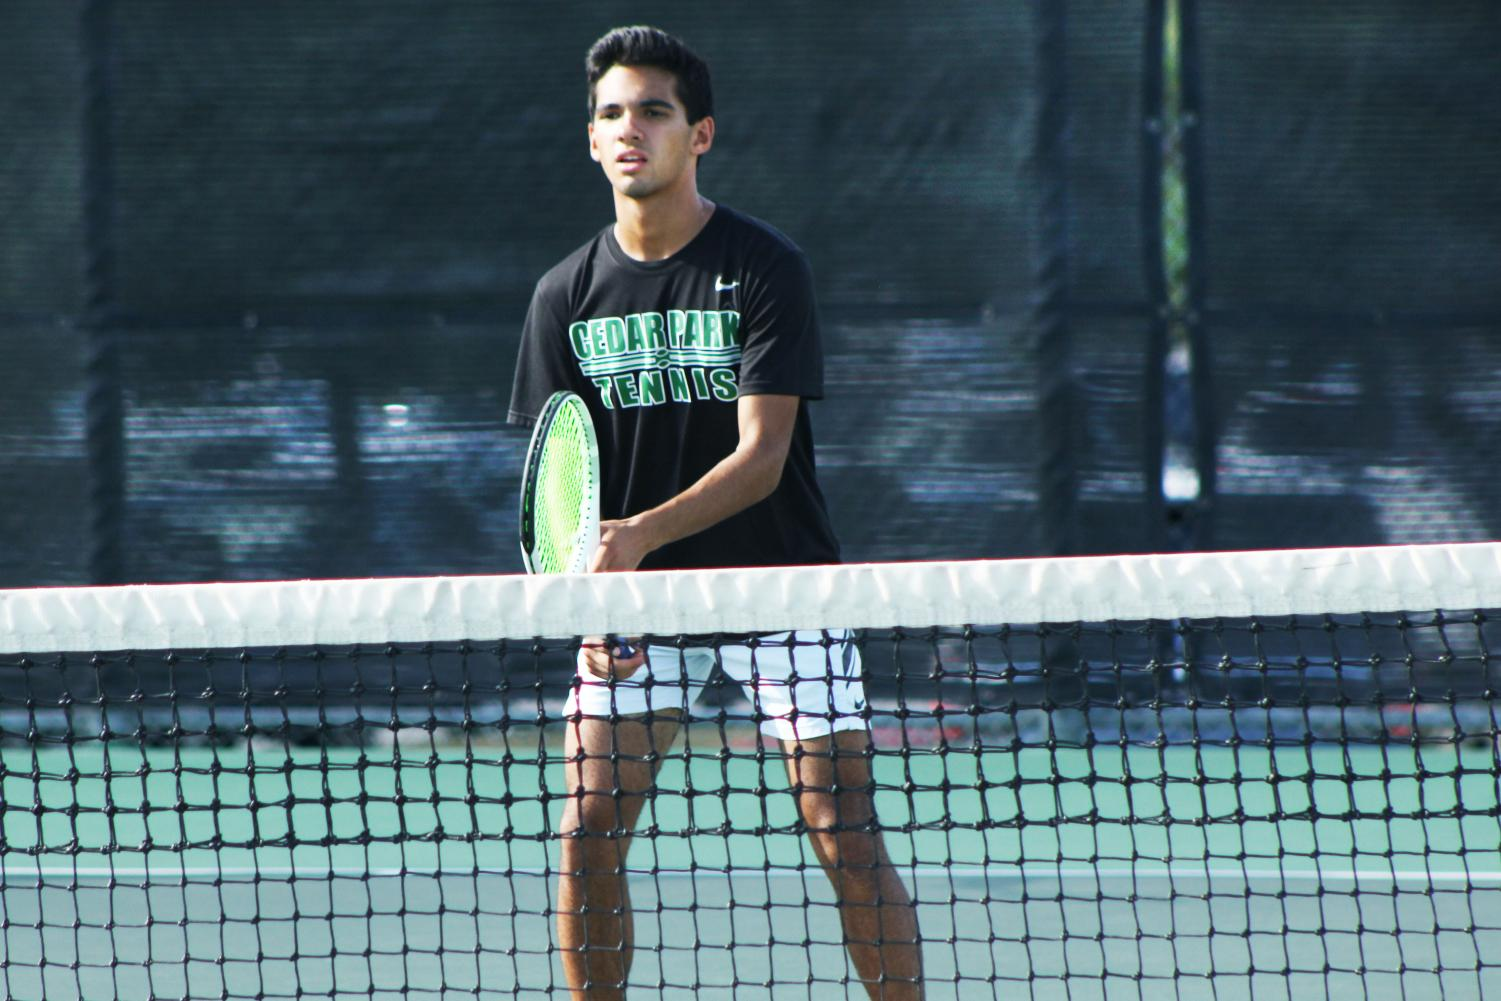 Senior varsity tennis player Bryce Bailey gets ready to return a serve during a match on Sept. 24. The varsity team has played a total of 15 matches and won every one, making them undefeated.